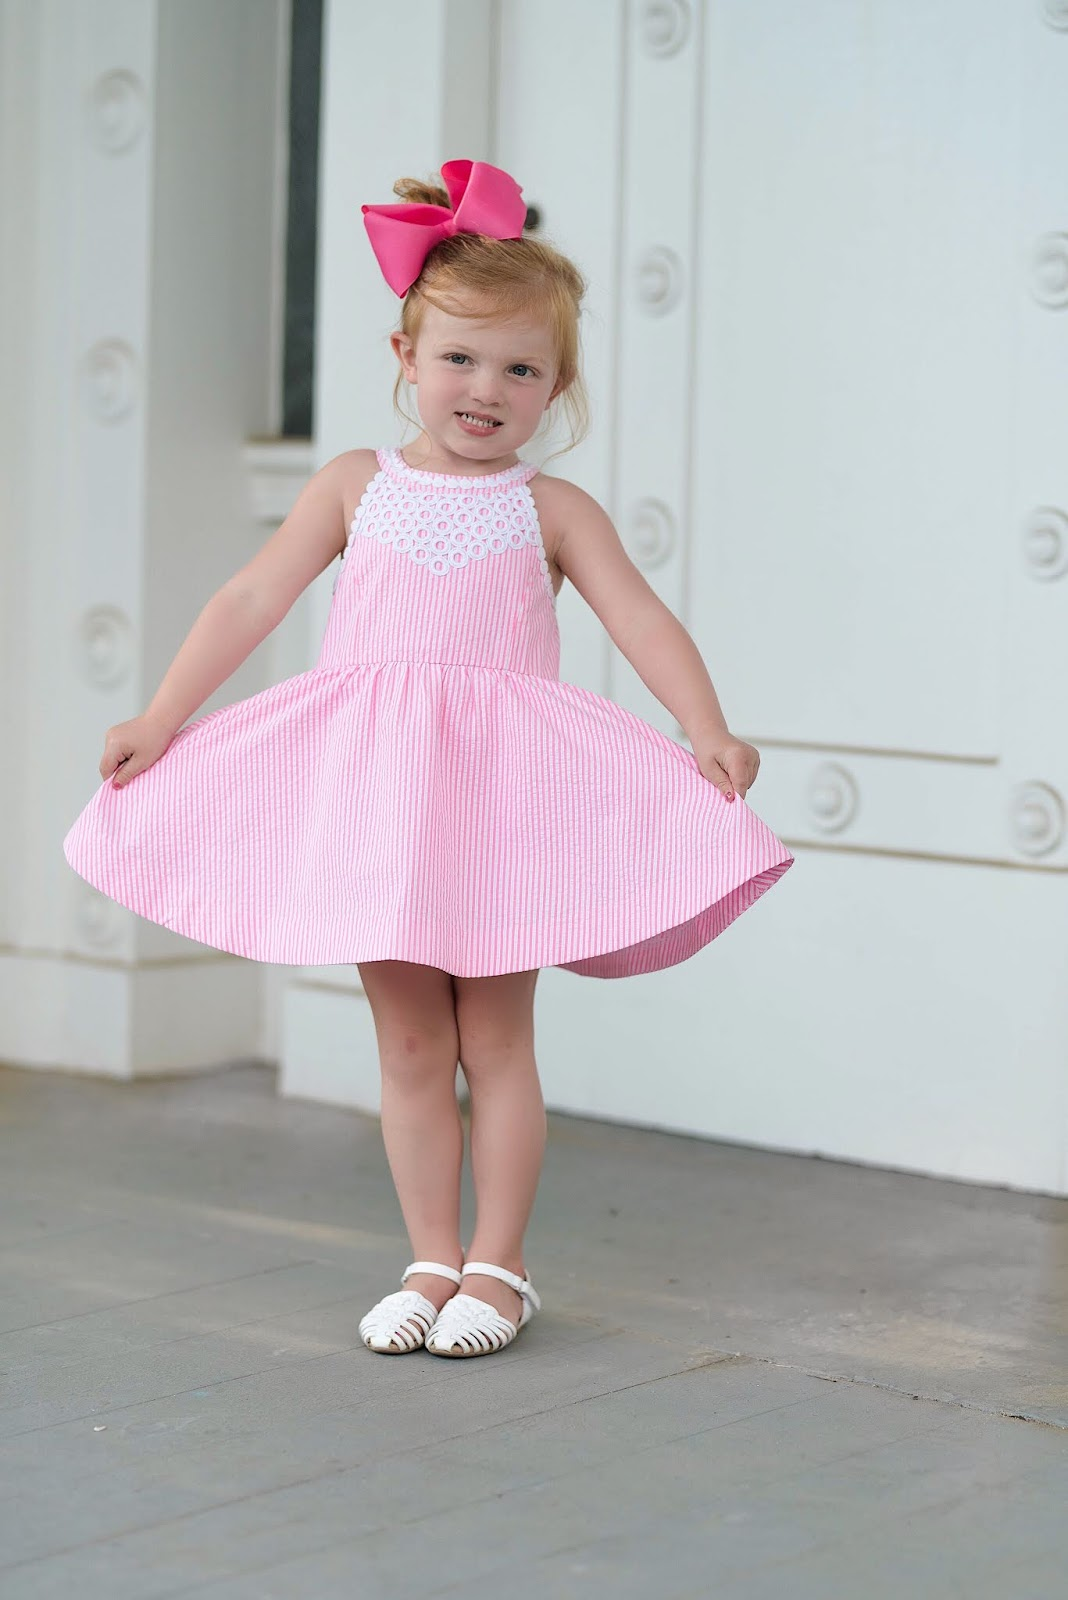 Lilly Pulitzer Girls Kinley Dress in Pink Cosmo Seersucker - Something Delightful Blog